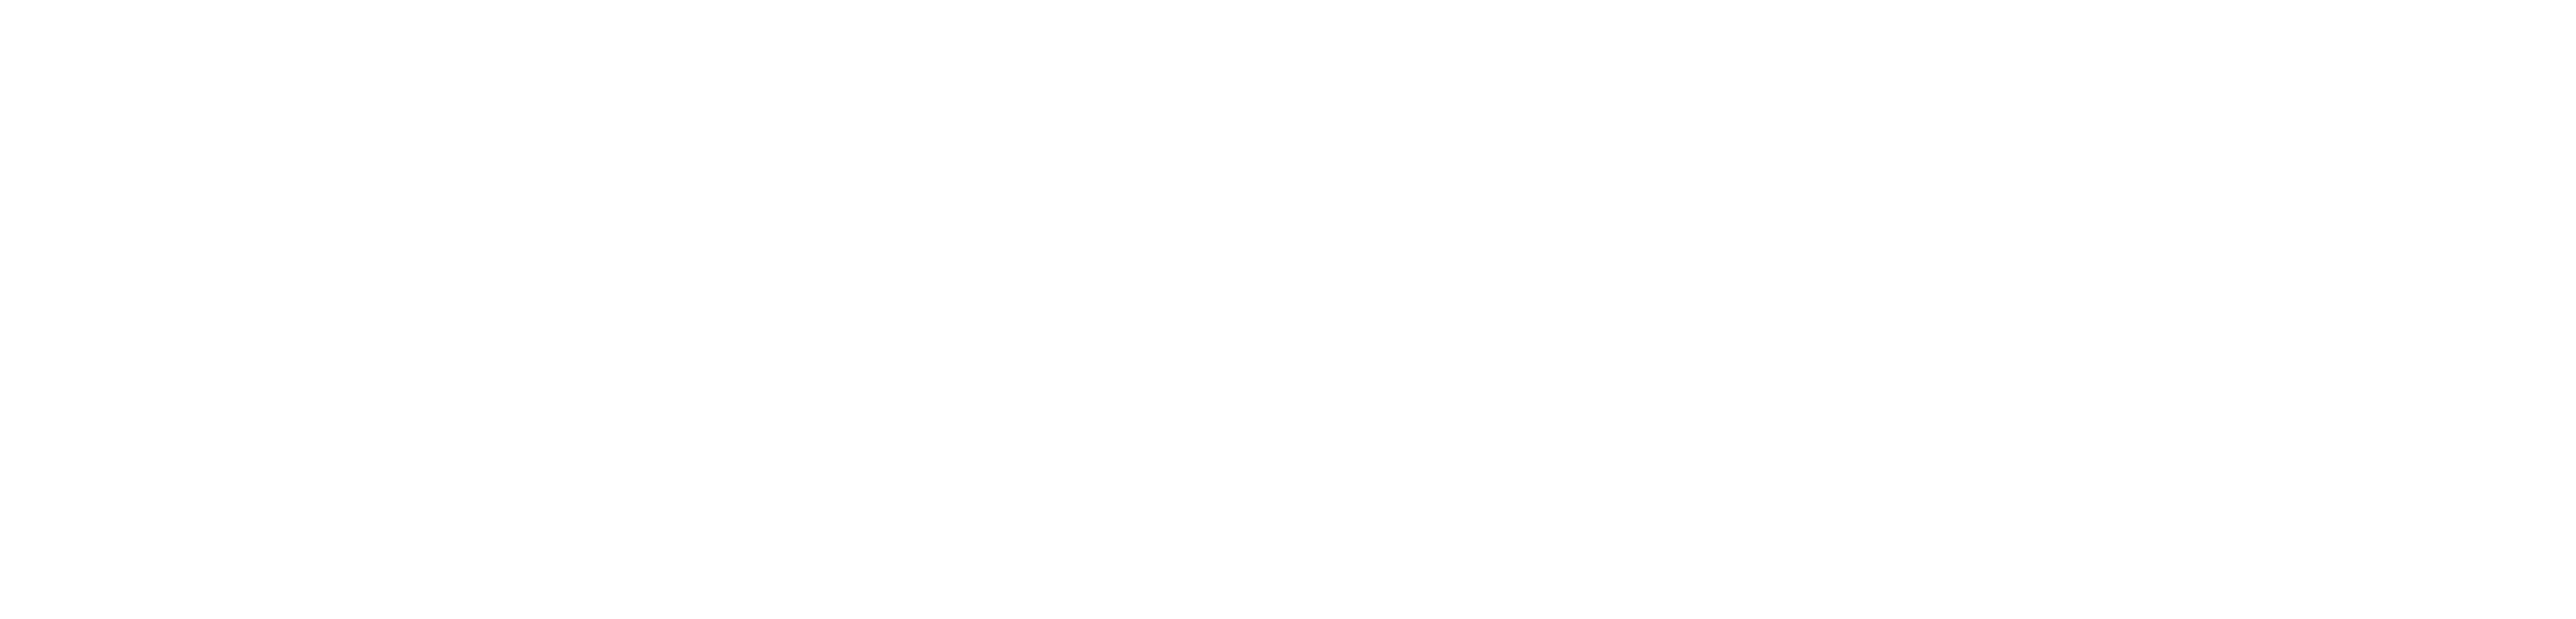 UNICEF_logo_white